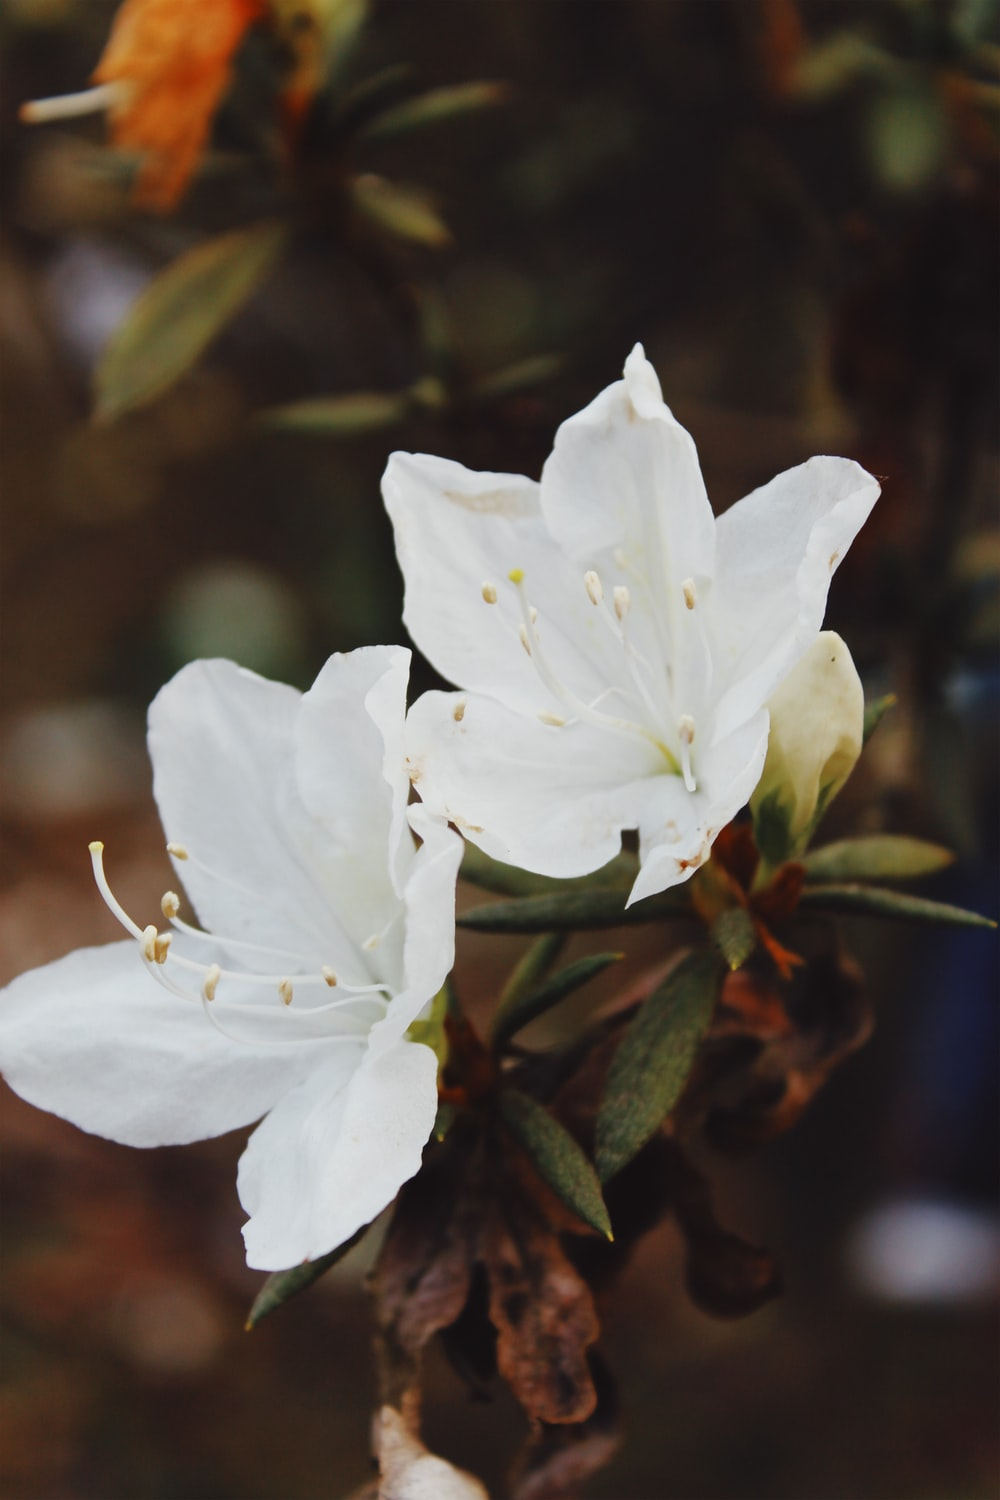 two white-petaled flowers